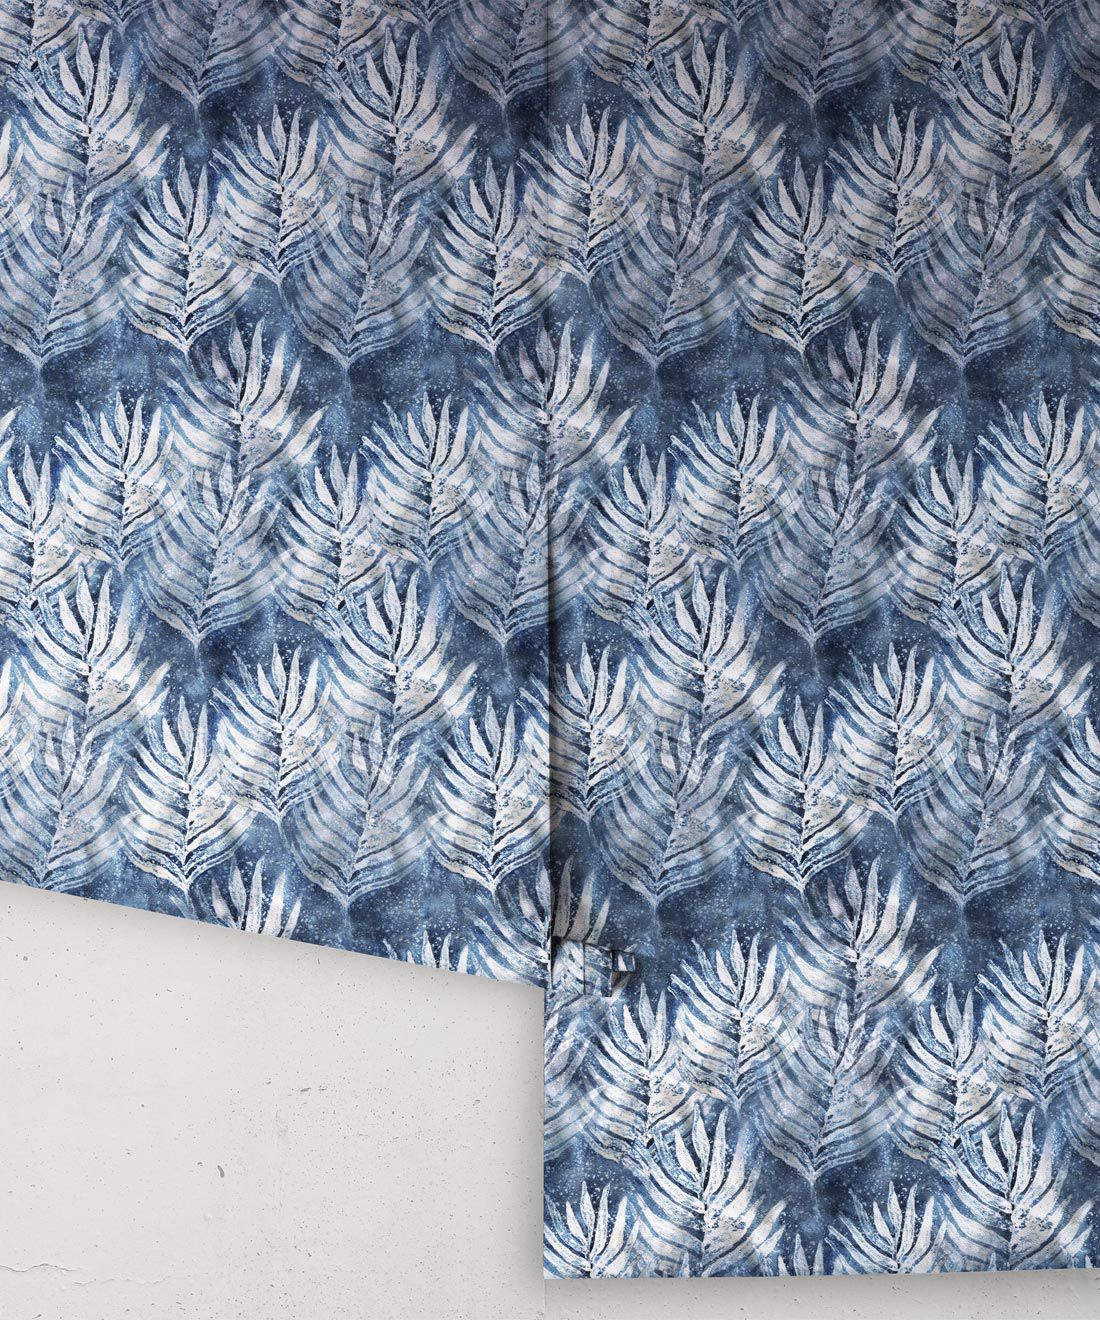 Blue Indigo Shibori Leaf Wallpaper